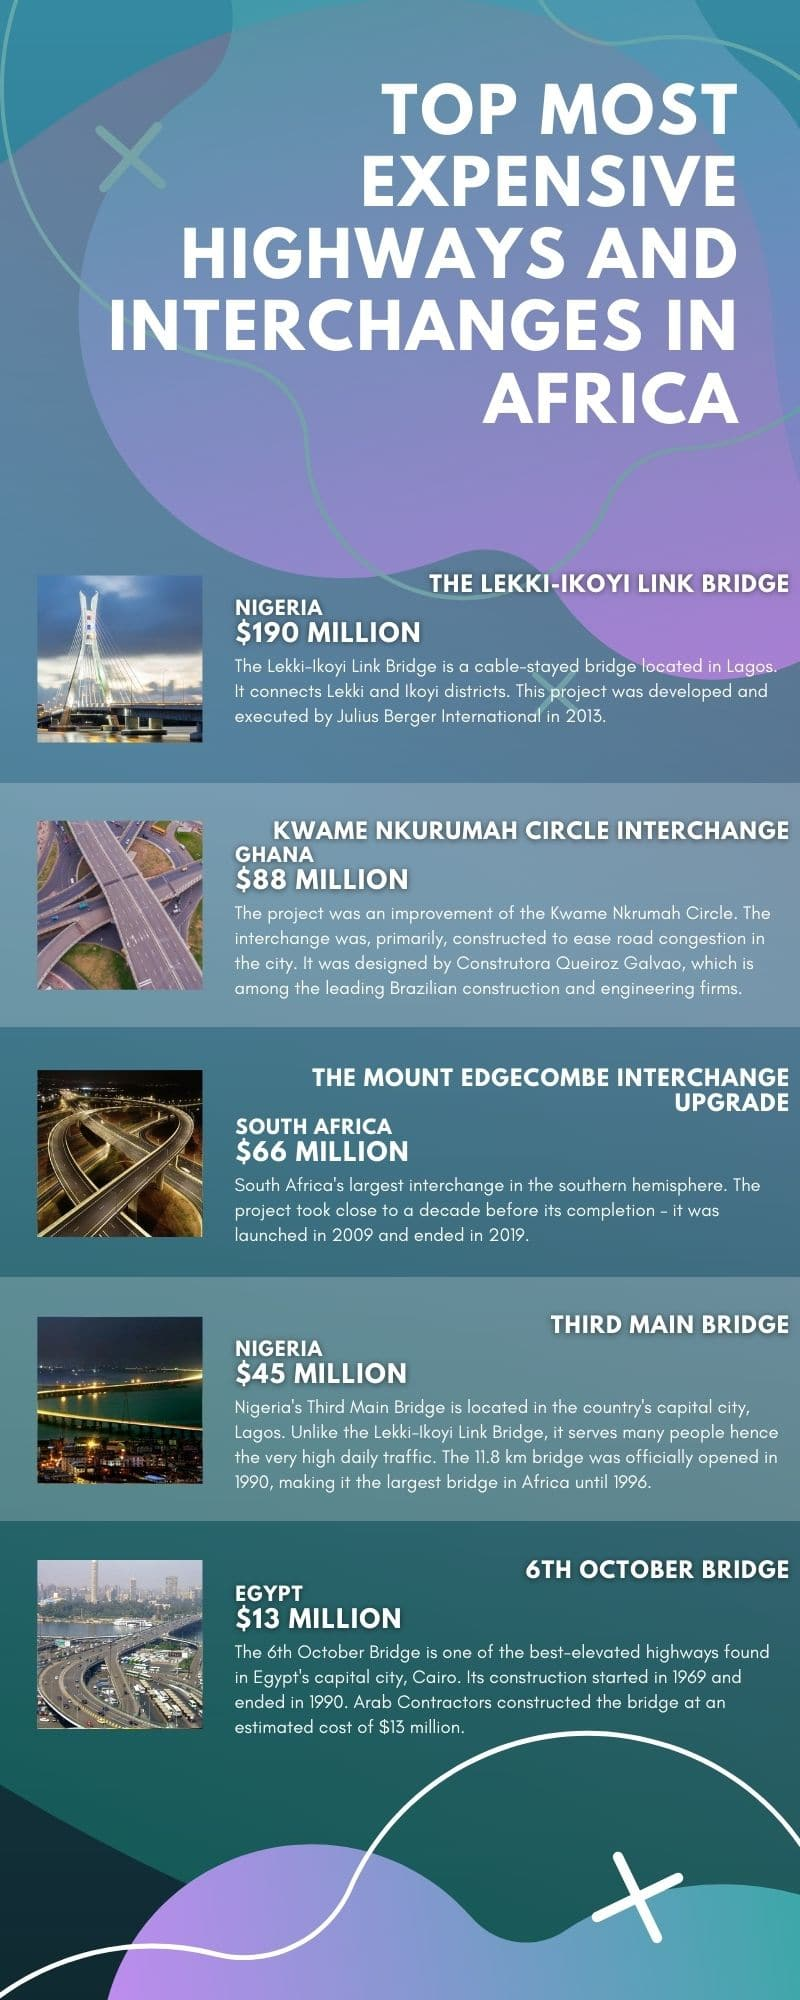 most expensive highways and interchanges in Africa 2020